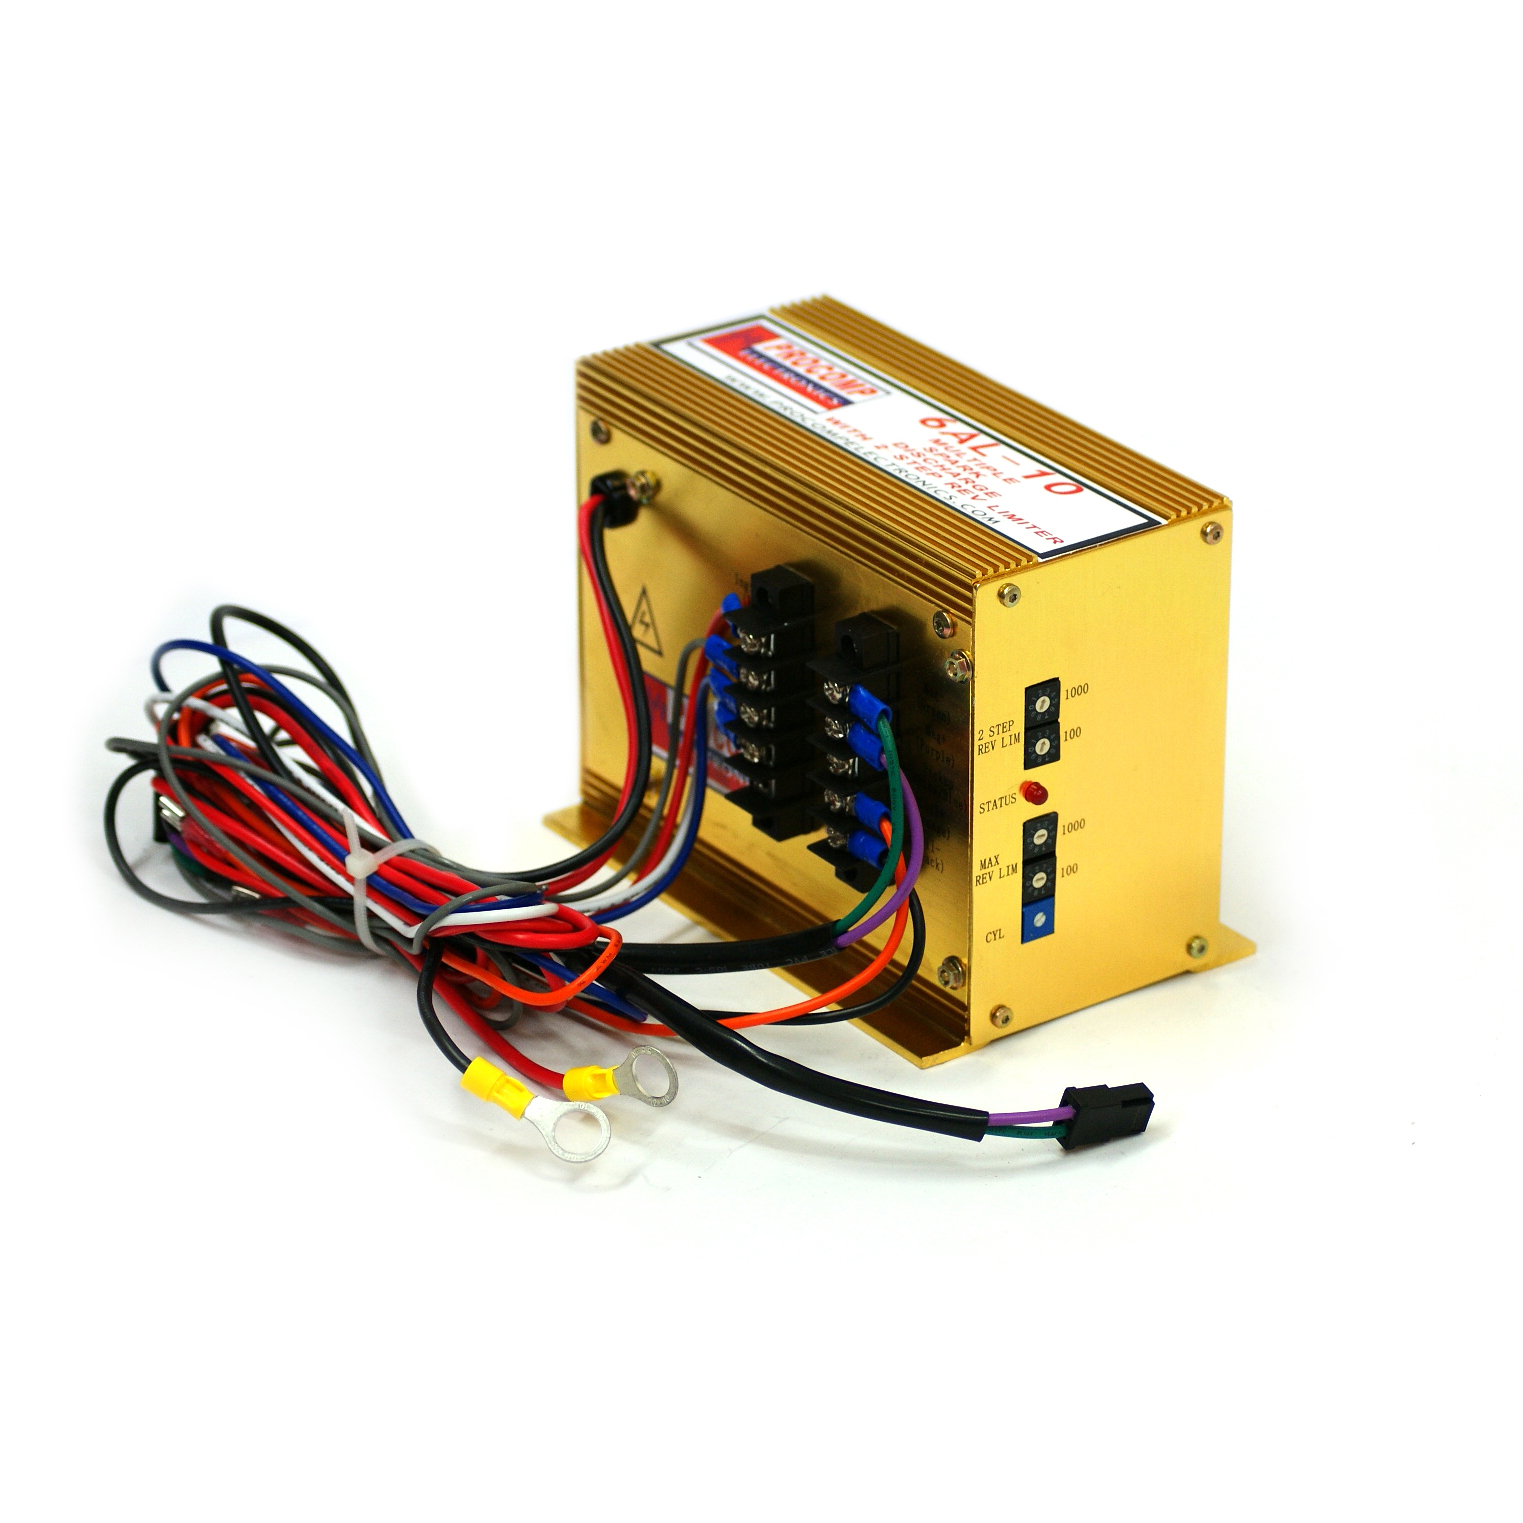 Multiple Spark Cdi Capacitor Discharge Ignition Box Dial